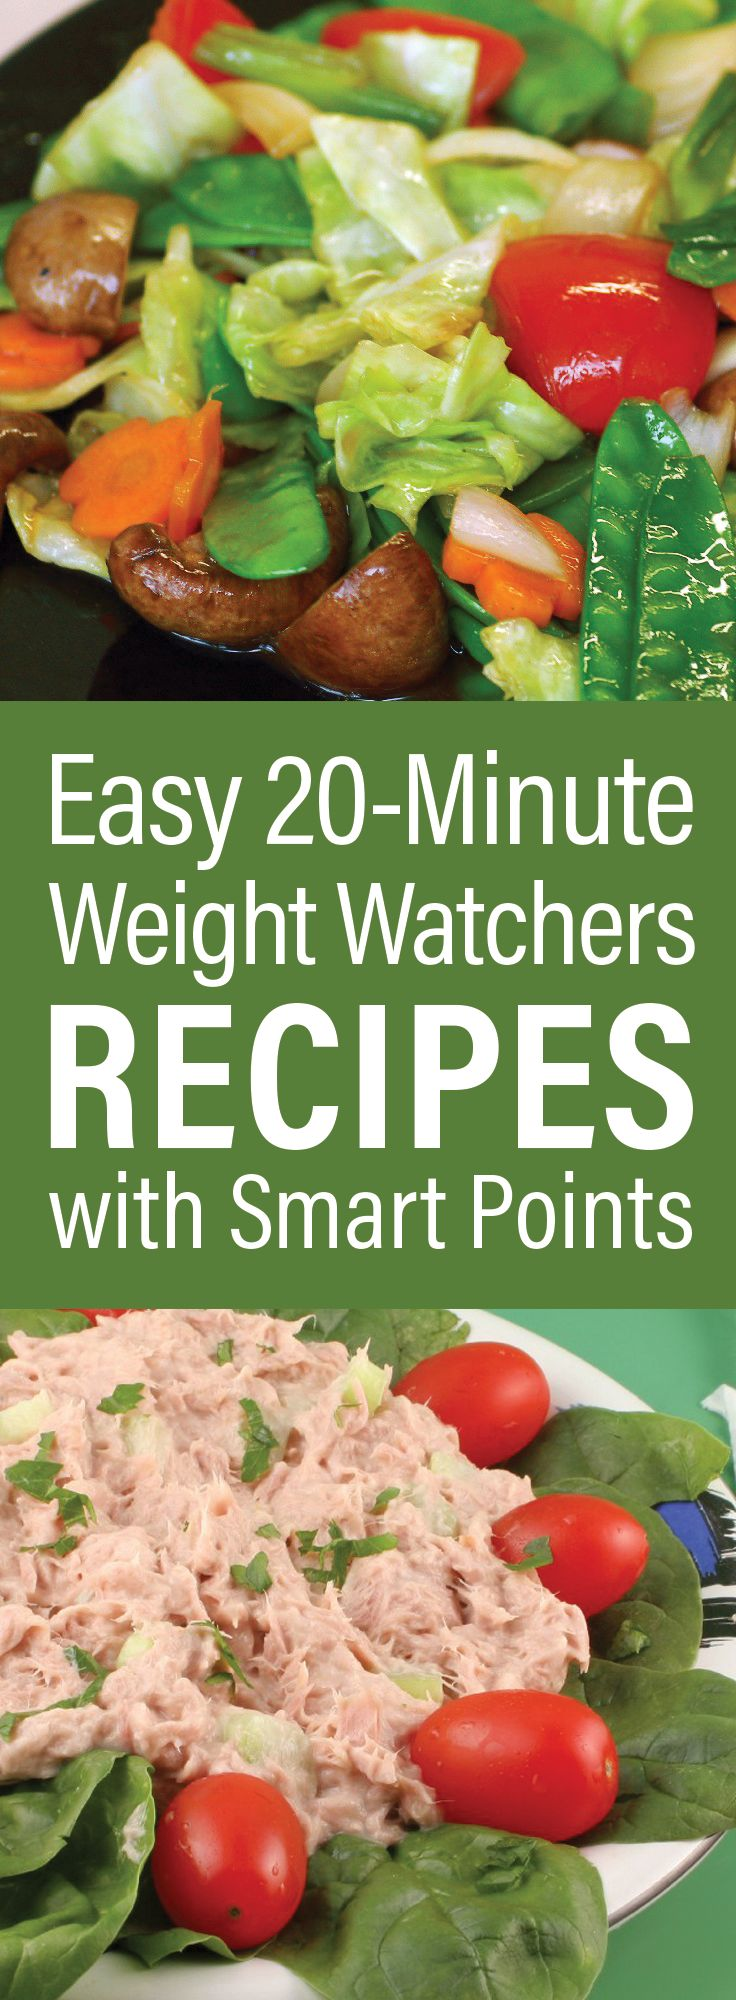 Easy 20-Minute Weight Watchers Dinner Recipes with SmartPoints including Egg Drop Soup, BLT Wraps, Ham Steak, Stir Fry Chinese Vegetables, Pita Pizza, Shrimp, Scallops, Pork Chops, Chicken, and more!